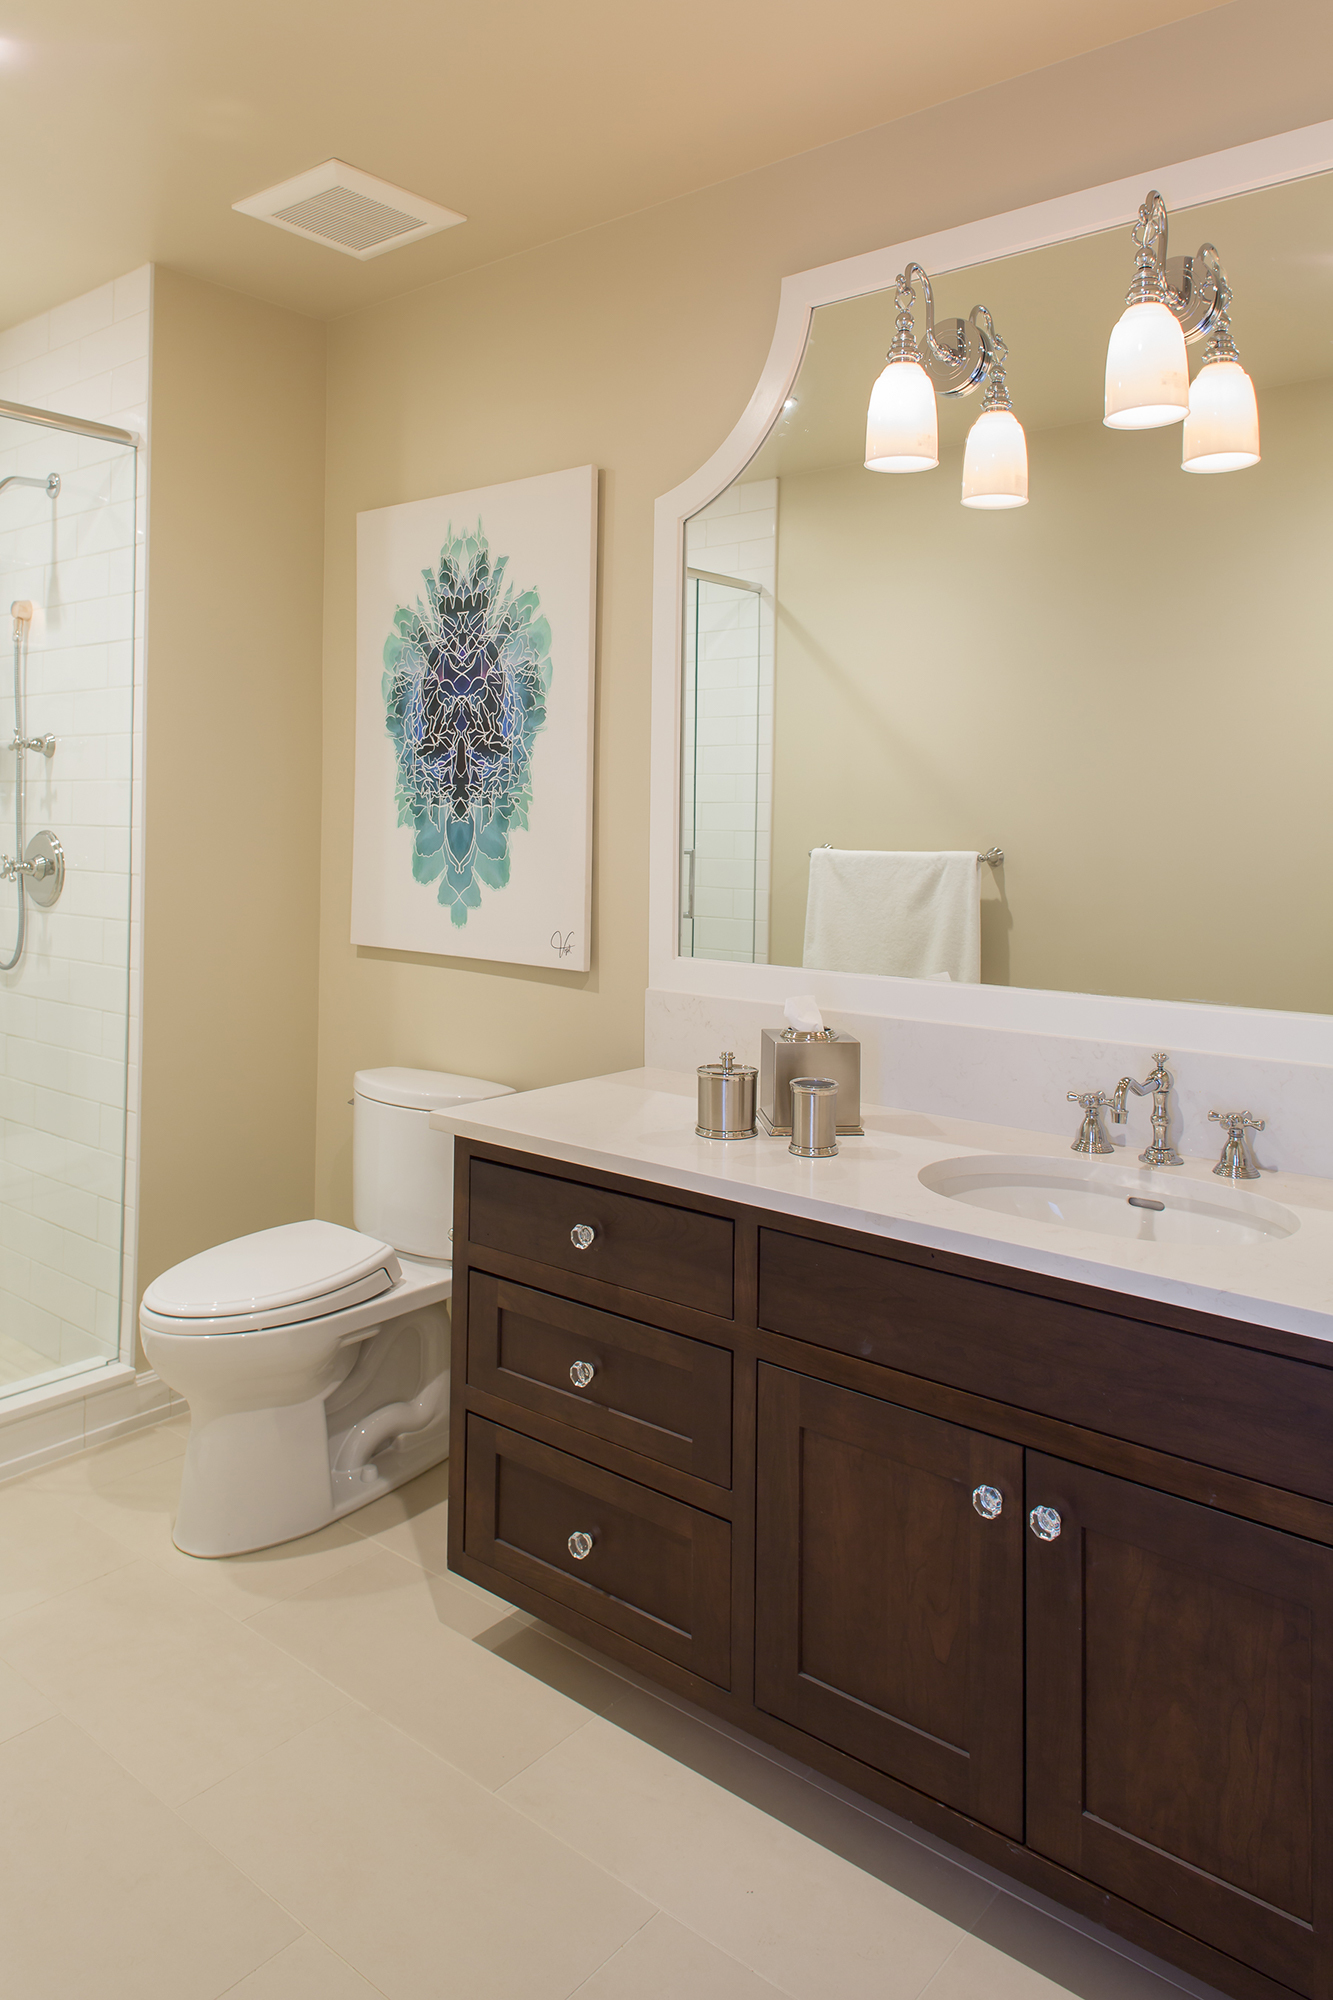 Stained Guest Bathroom Cabinets in Coffee by Showplace Cabinetry